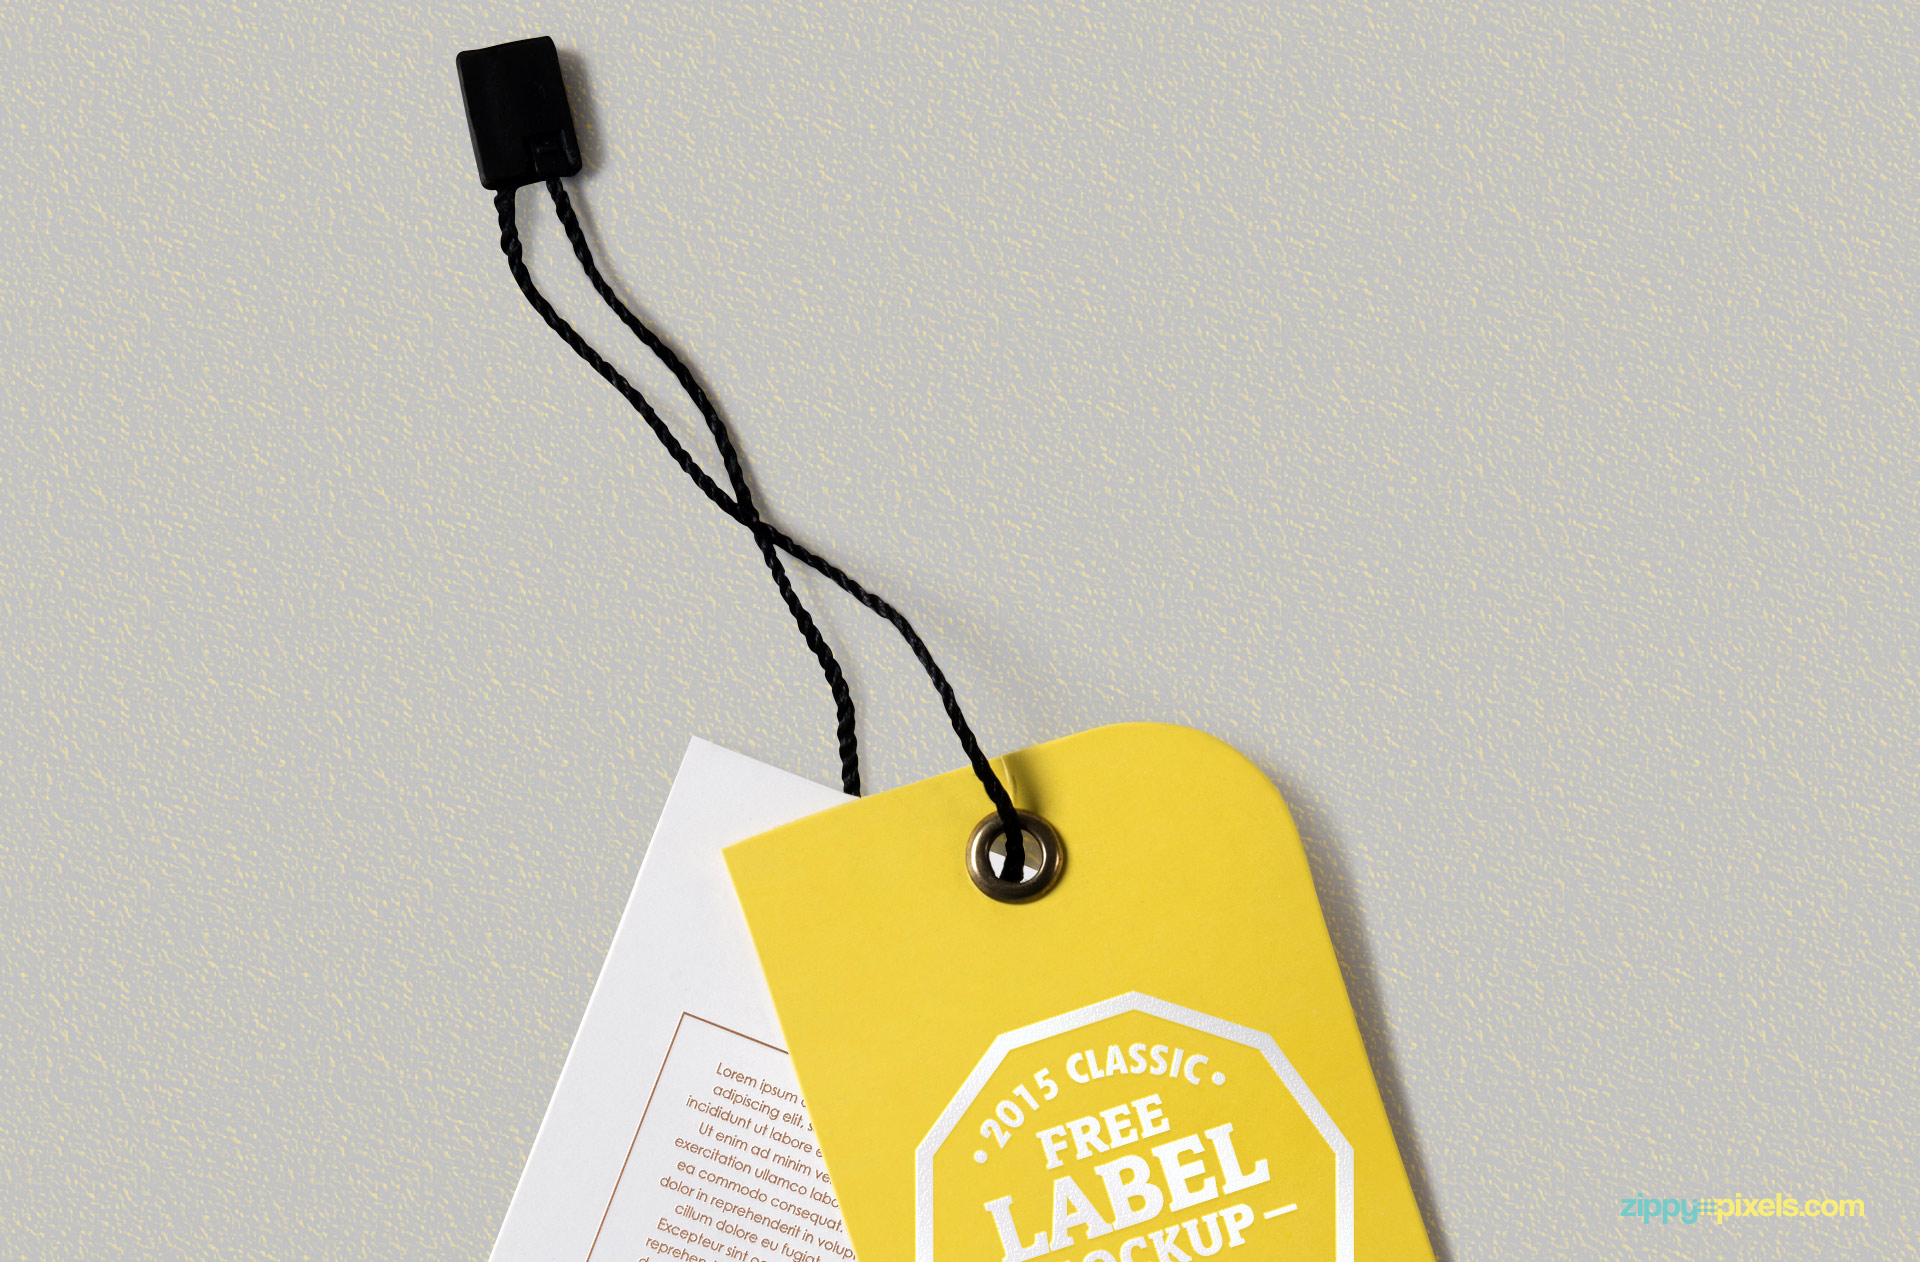 Metal punch hole and thread string of this tag mockup.